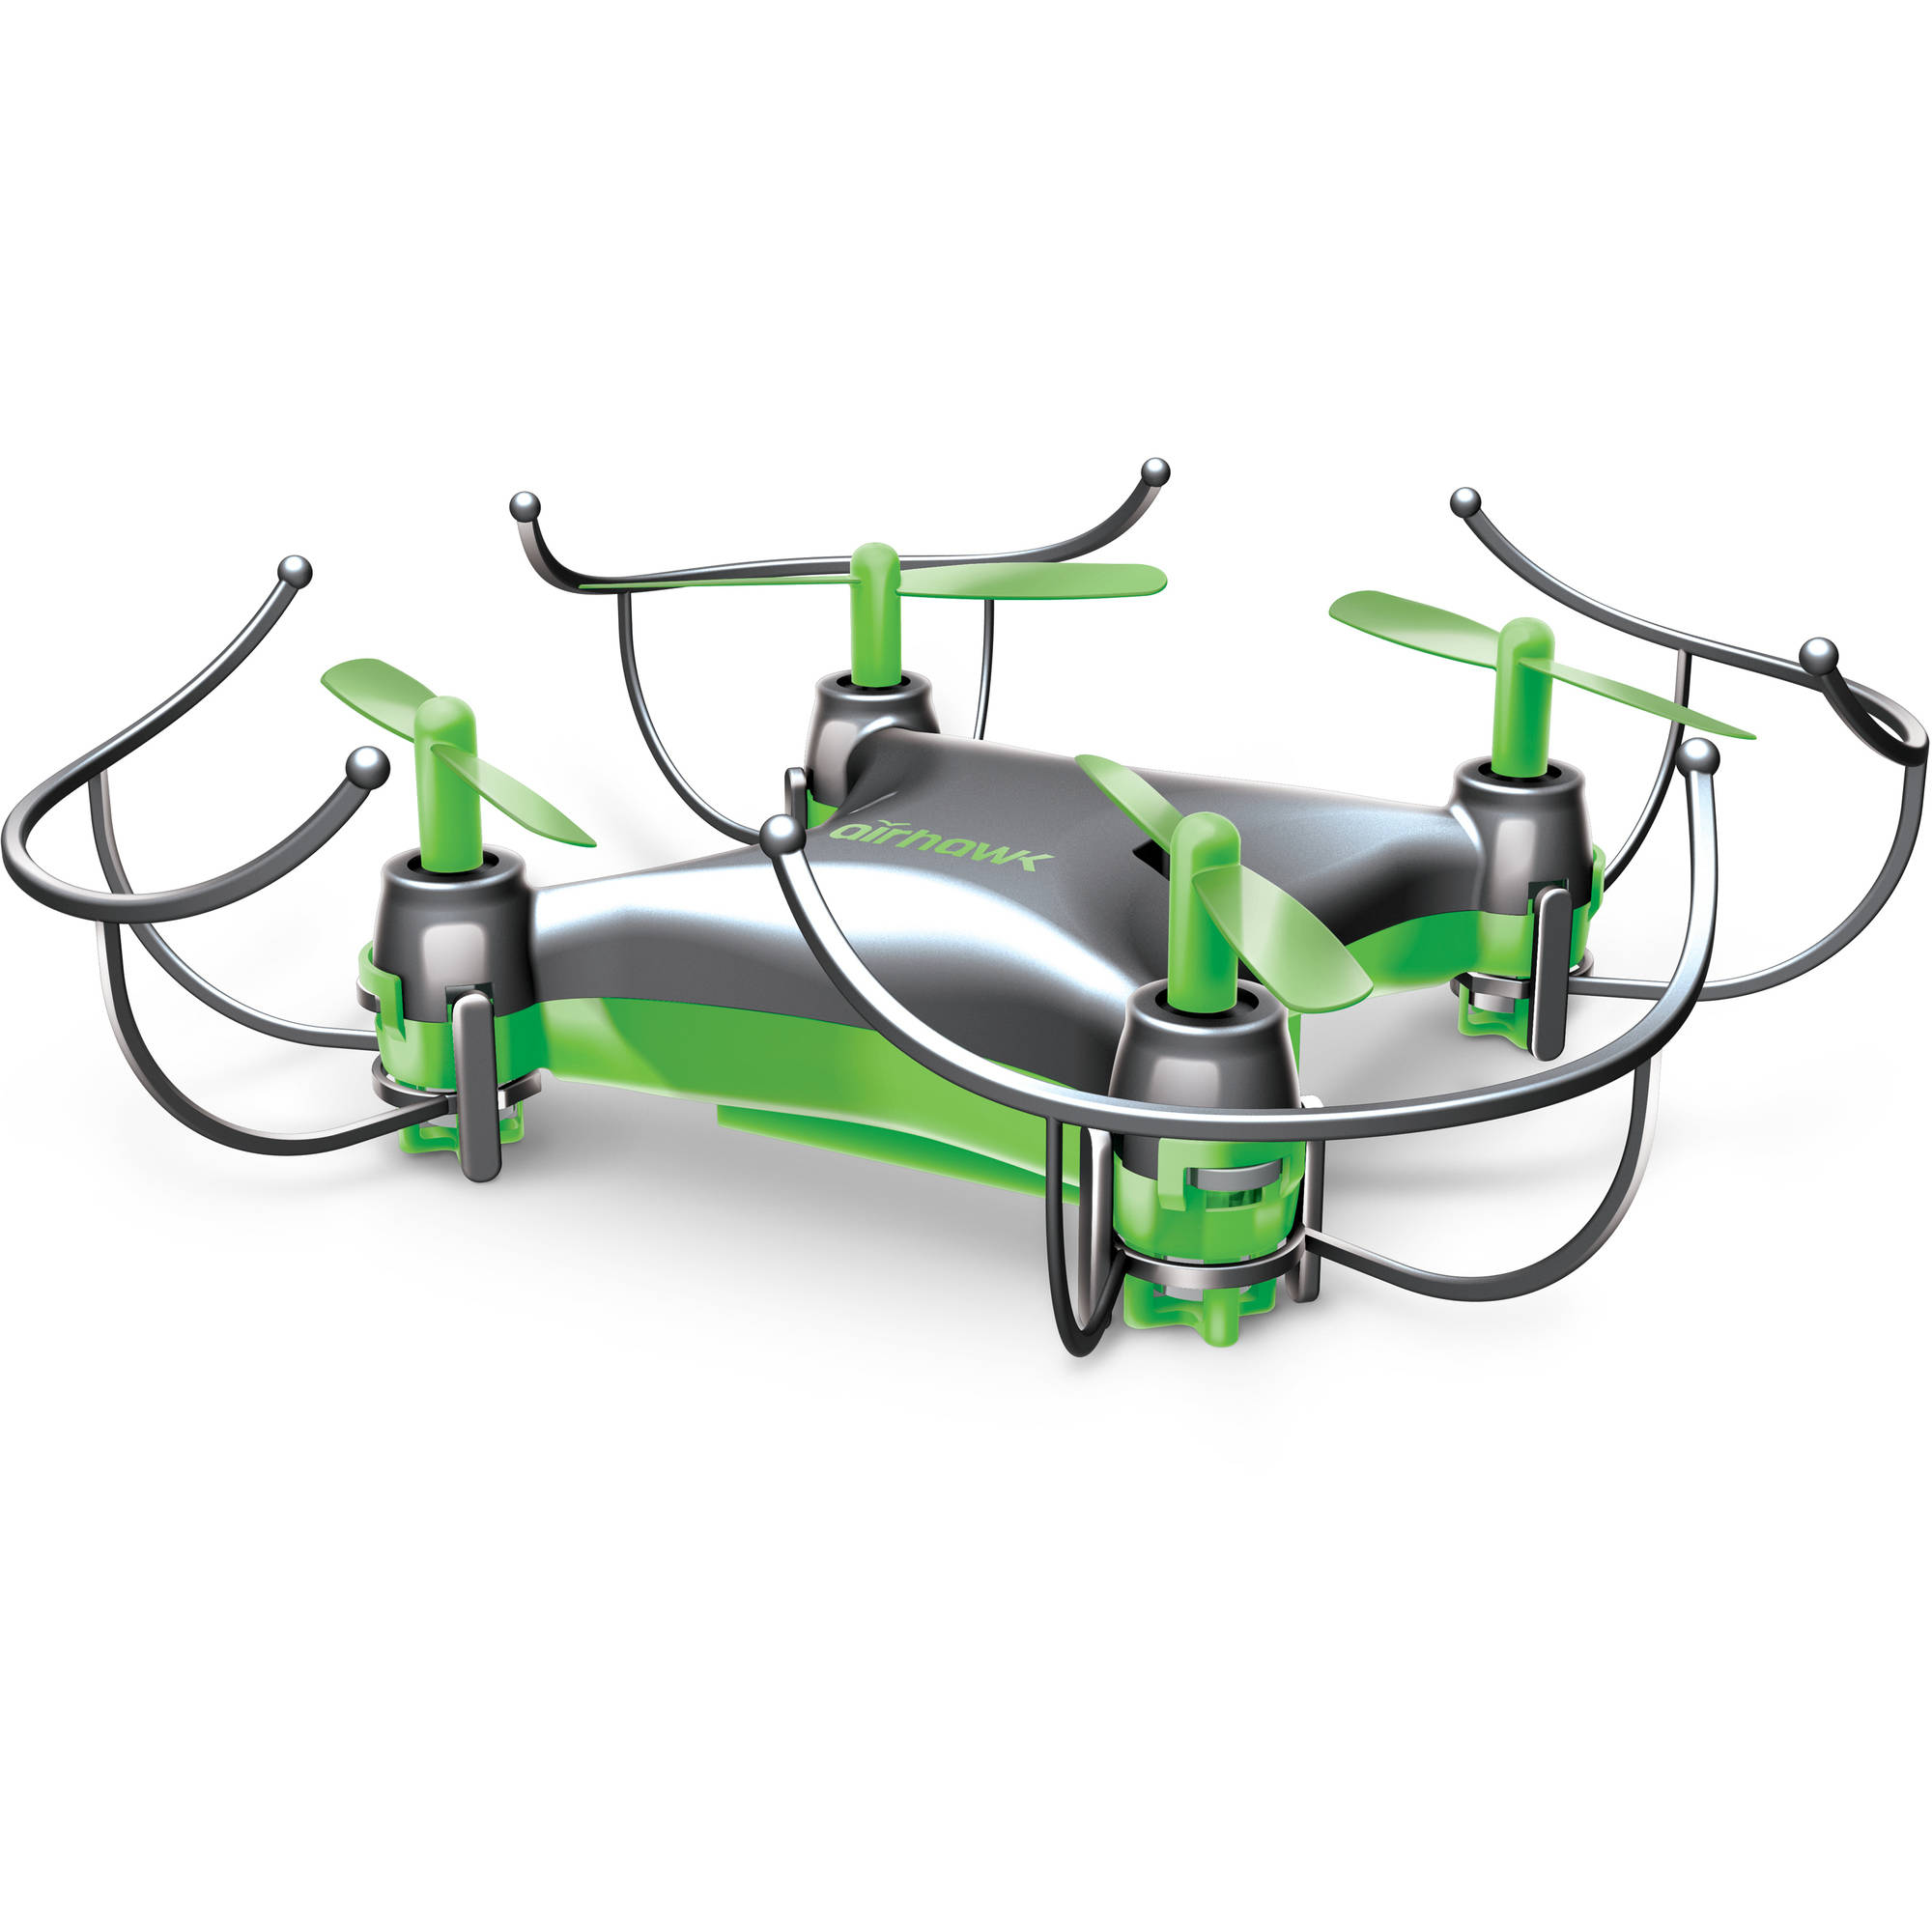 Image of Airhawk Nano 3-in-1 Quadcopter with Removable Wheels